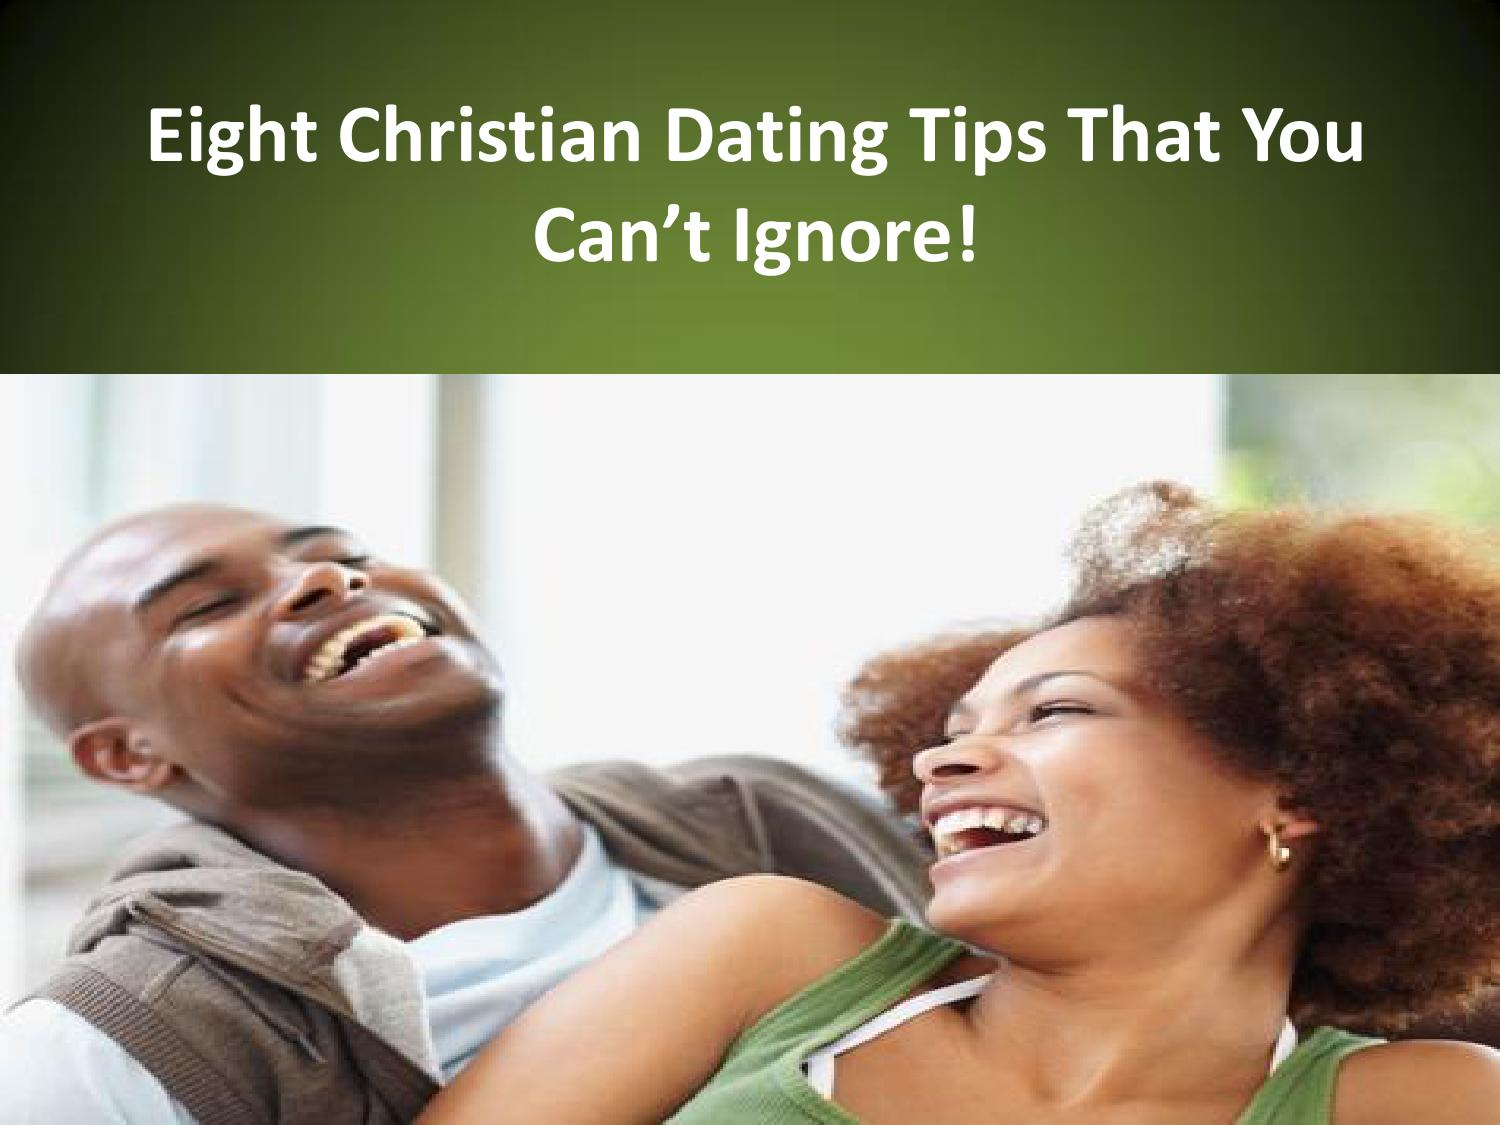 10 Biblical Tips for Christian Singles - Seedbed